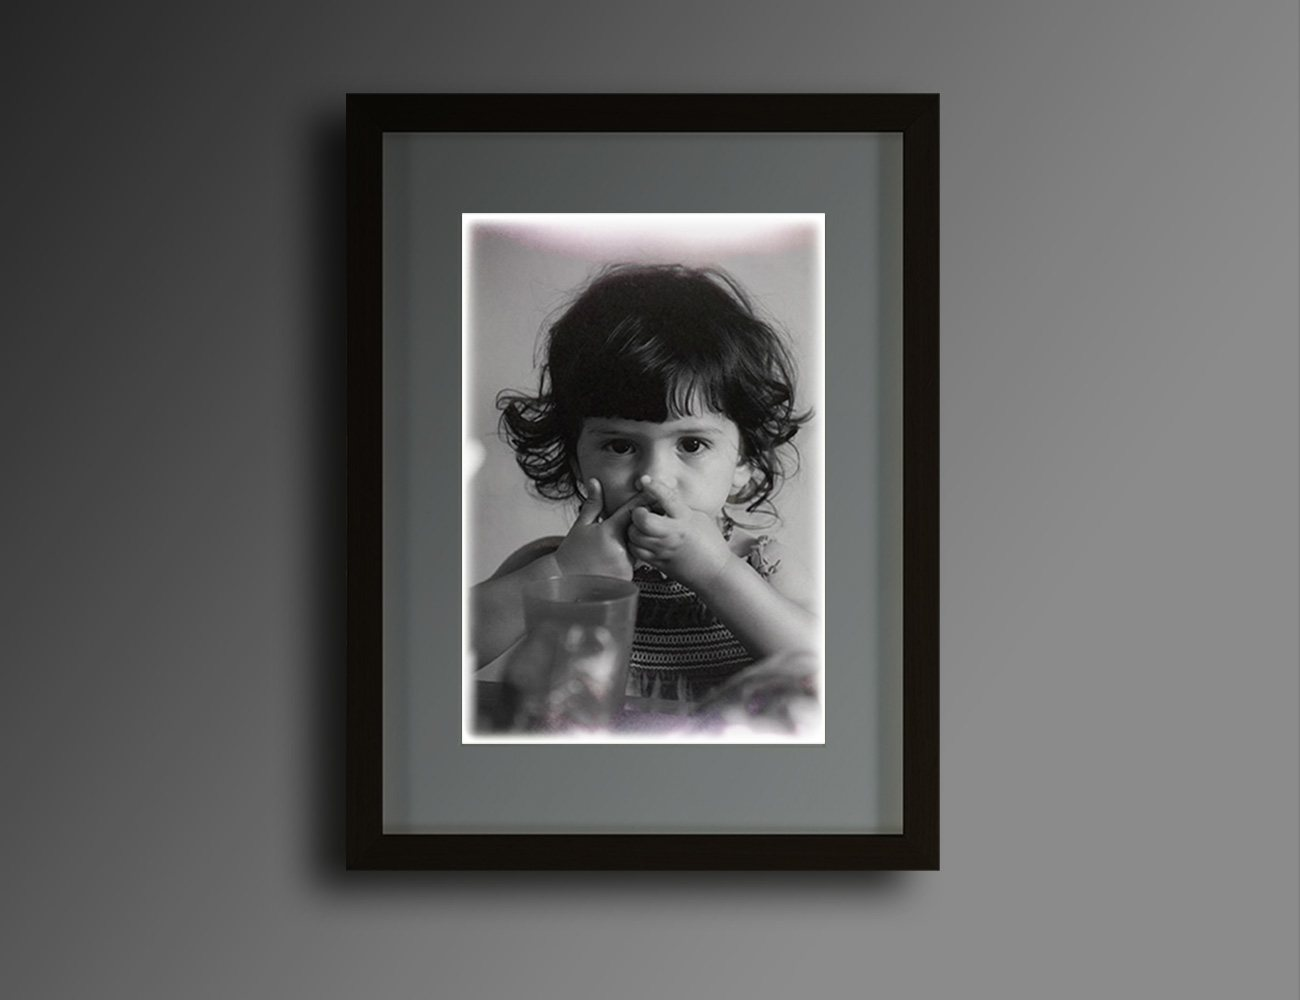 Motion-Activated, Illuminated Picture Frame